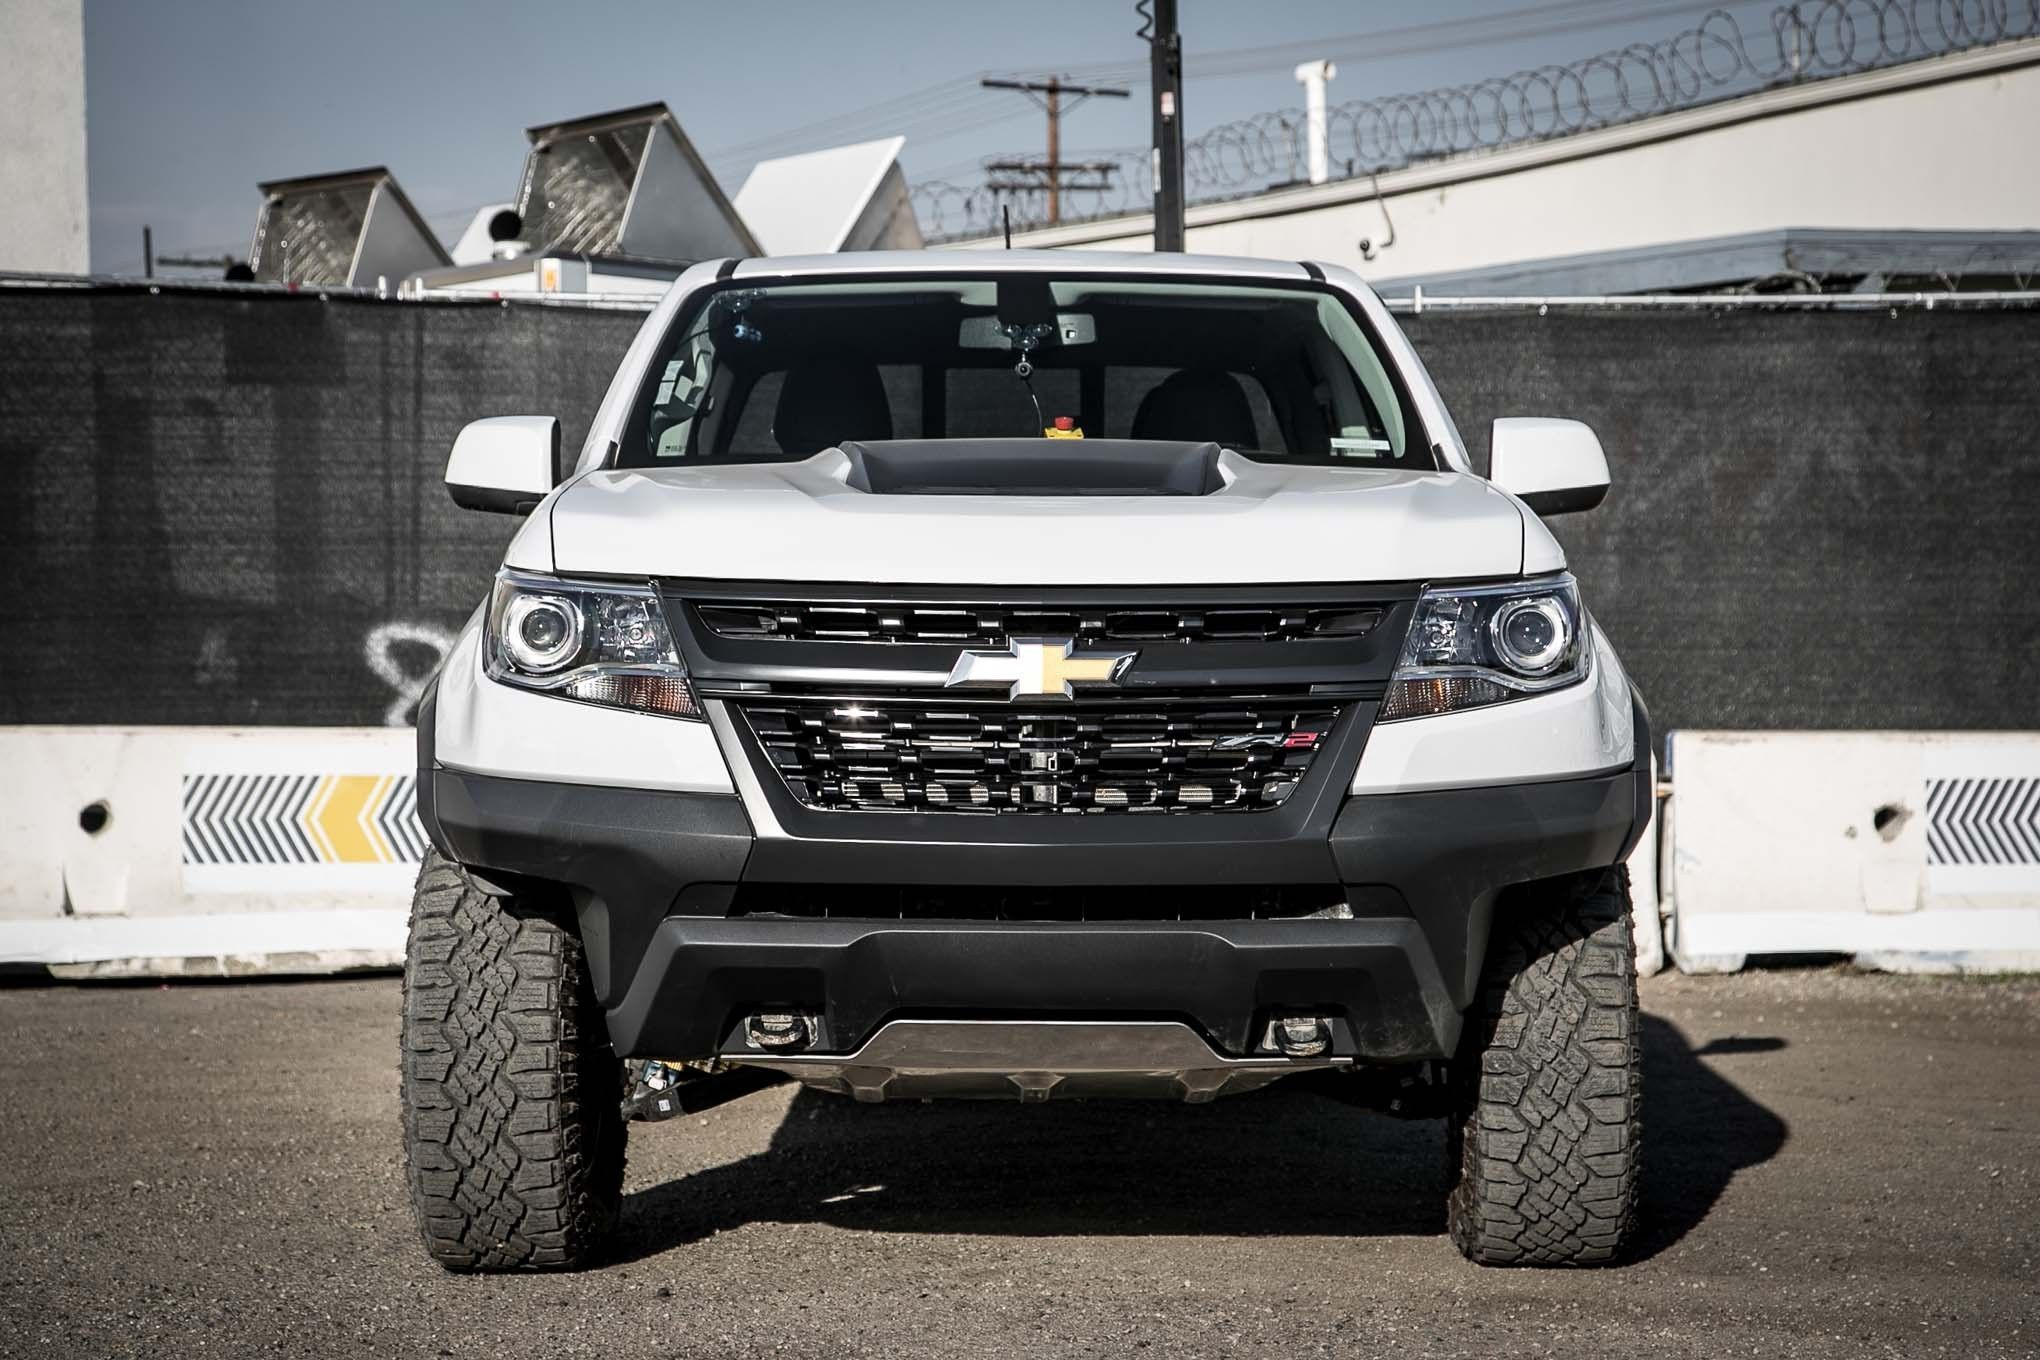 2019 Chevrolet Colorado Zr2 Release Date Chevrolet Colorado Chevy Colorado Chevrolet